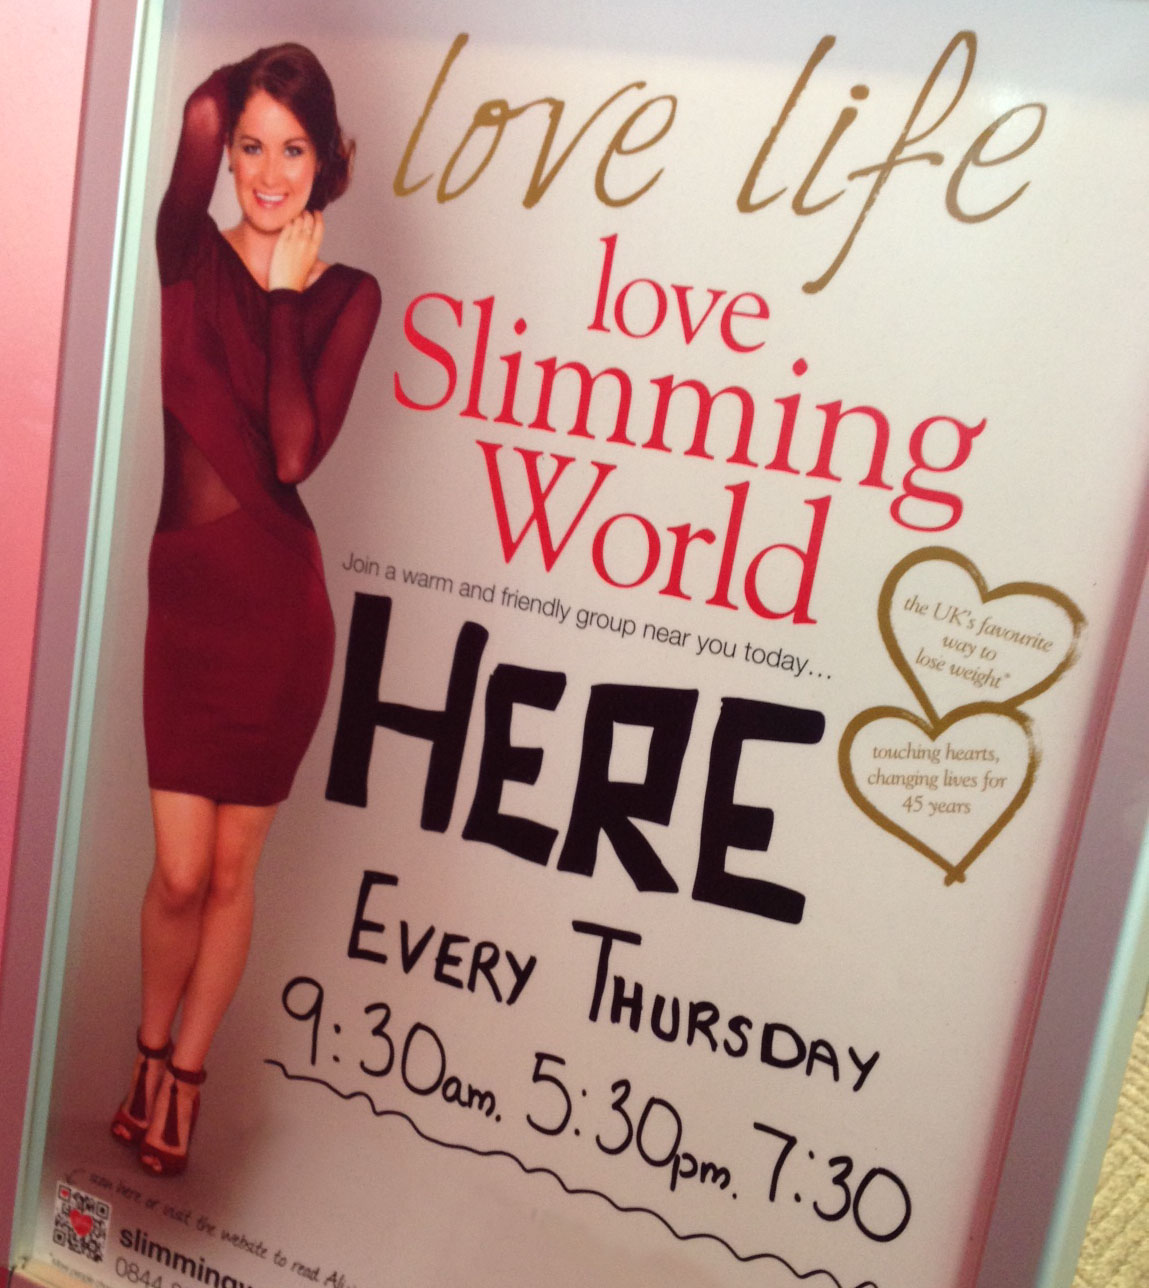 Slimming world at the madeley centre the madeley centre The slimming world